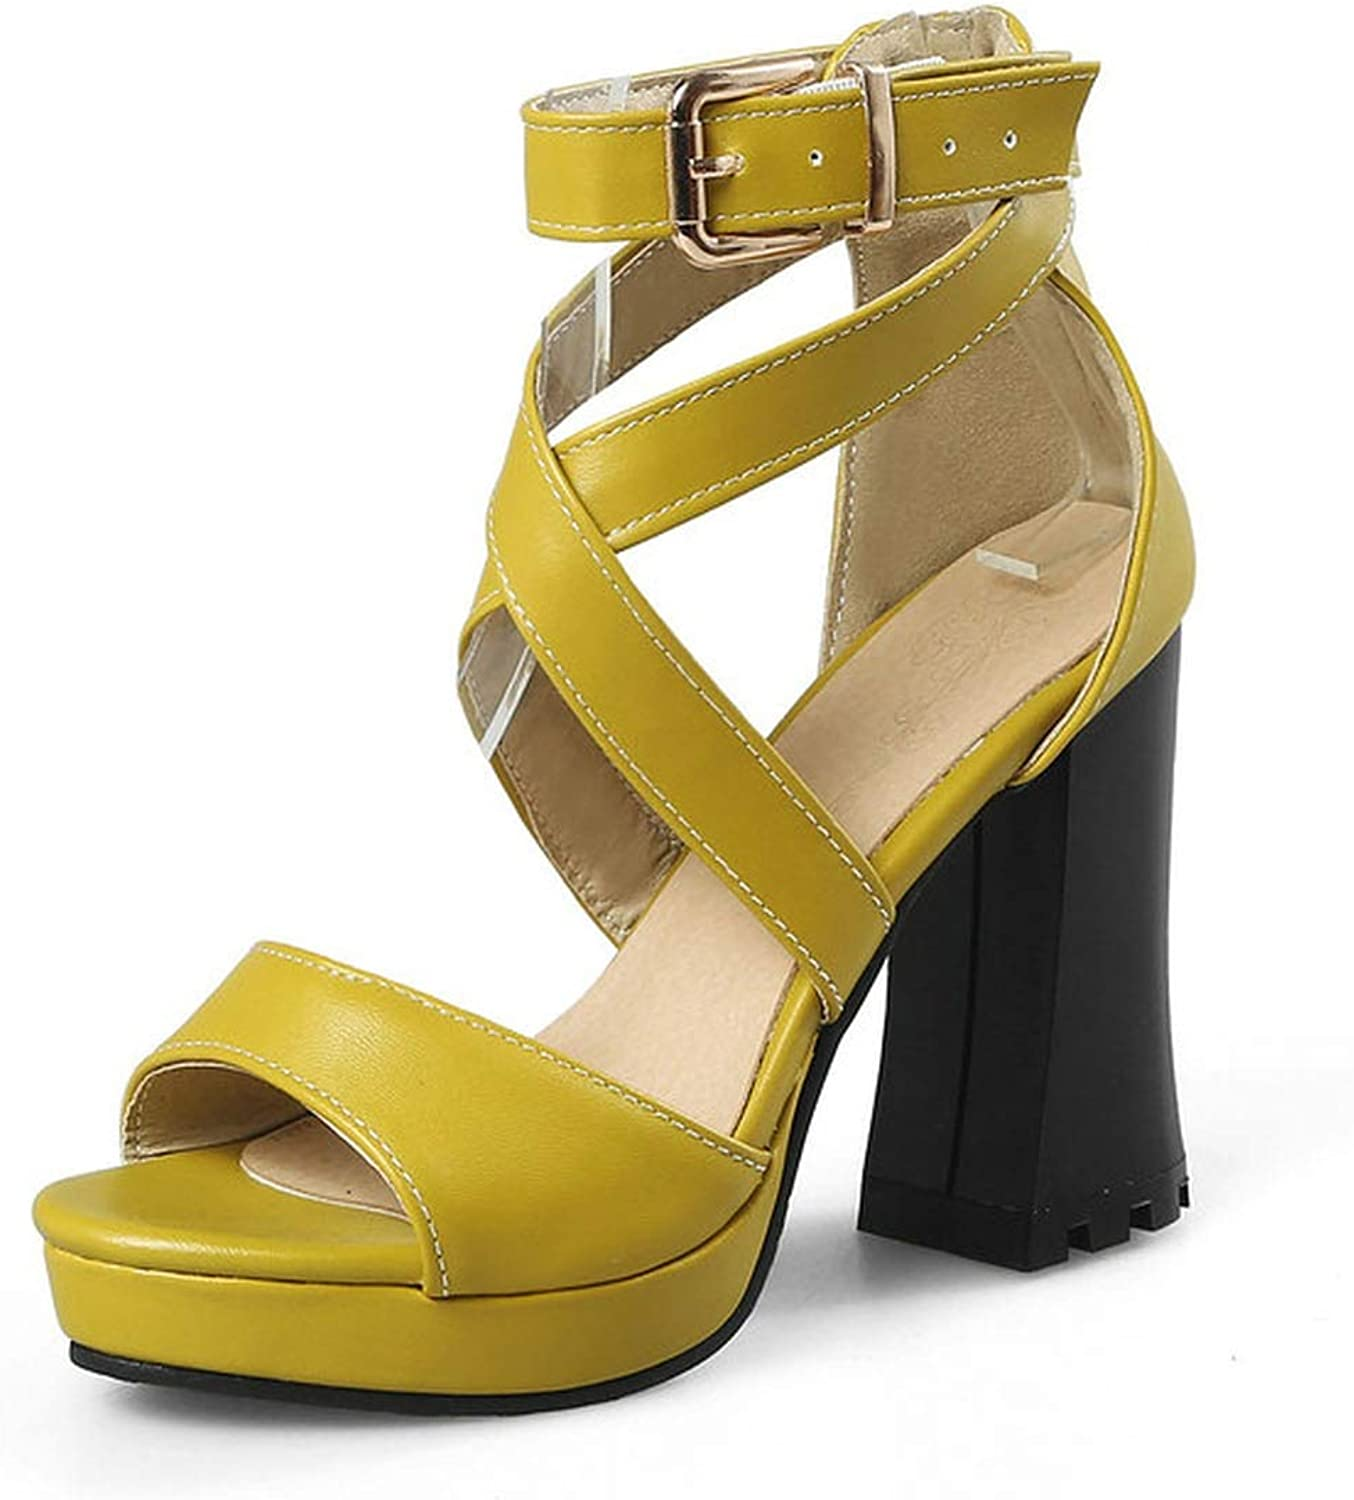 Charismatic-Vibrators Women Sandals Pu Leather Square High Heel All Match Women shoes Platform Buckle Westrn Style Sandals